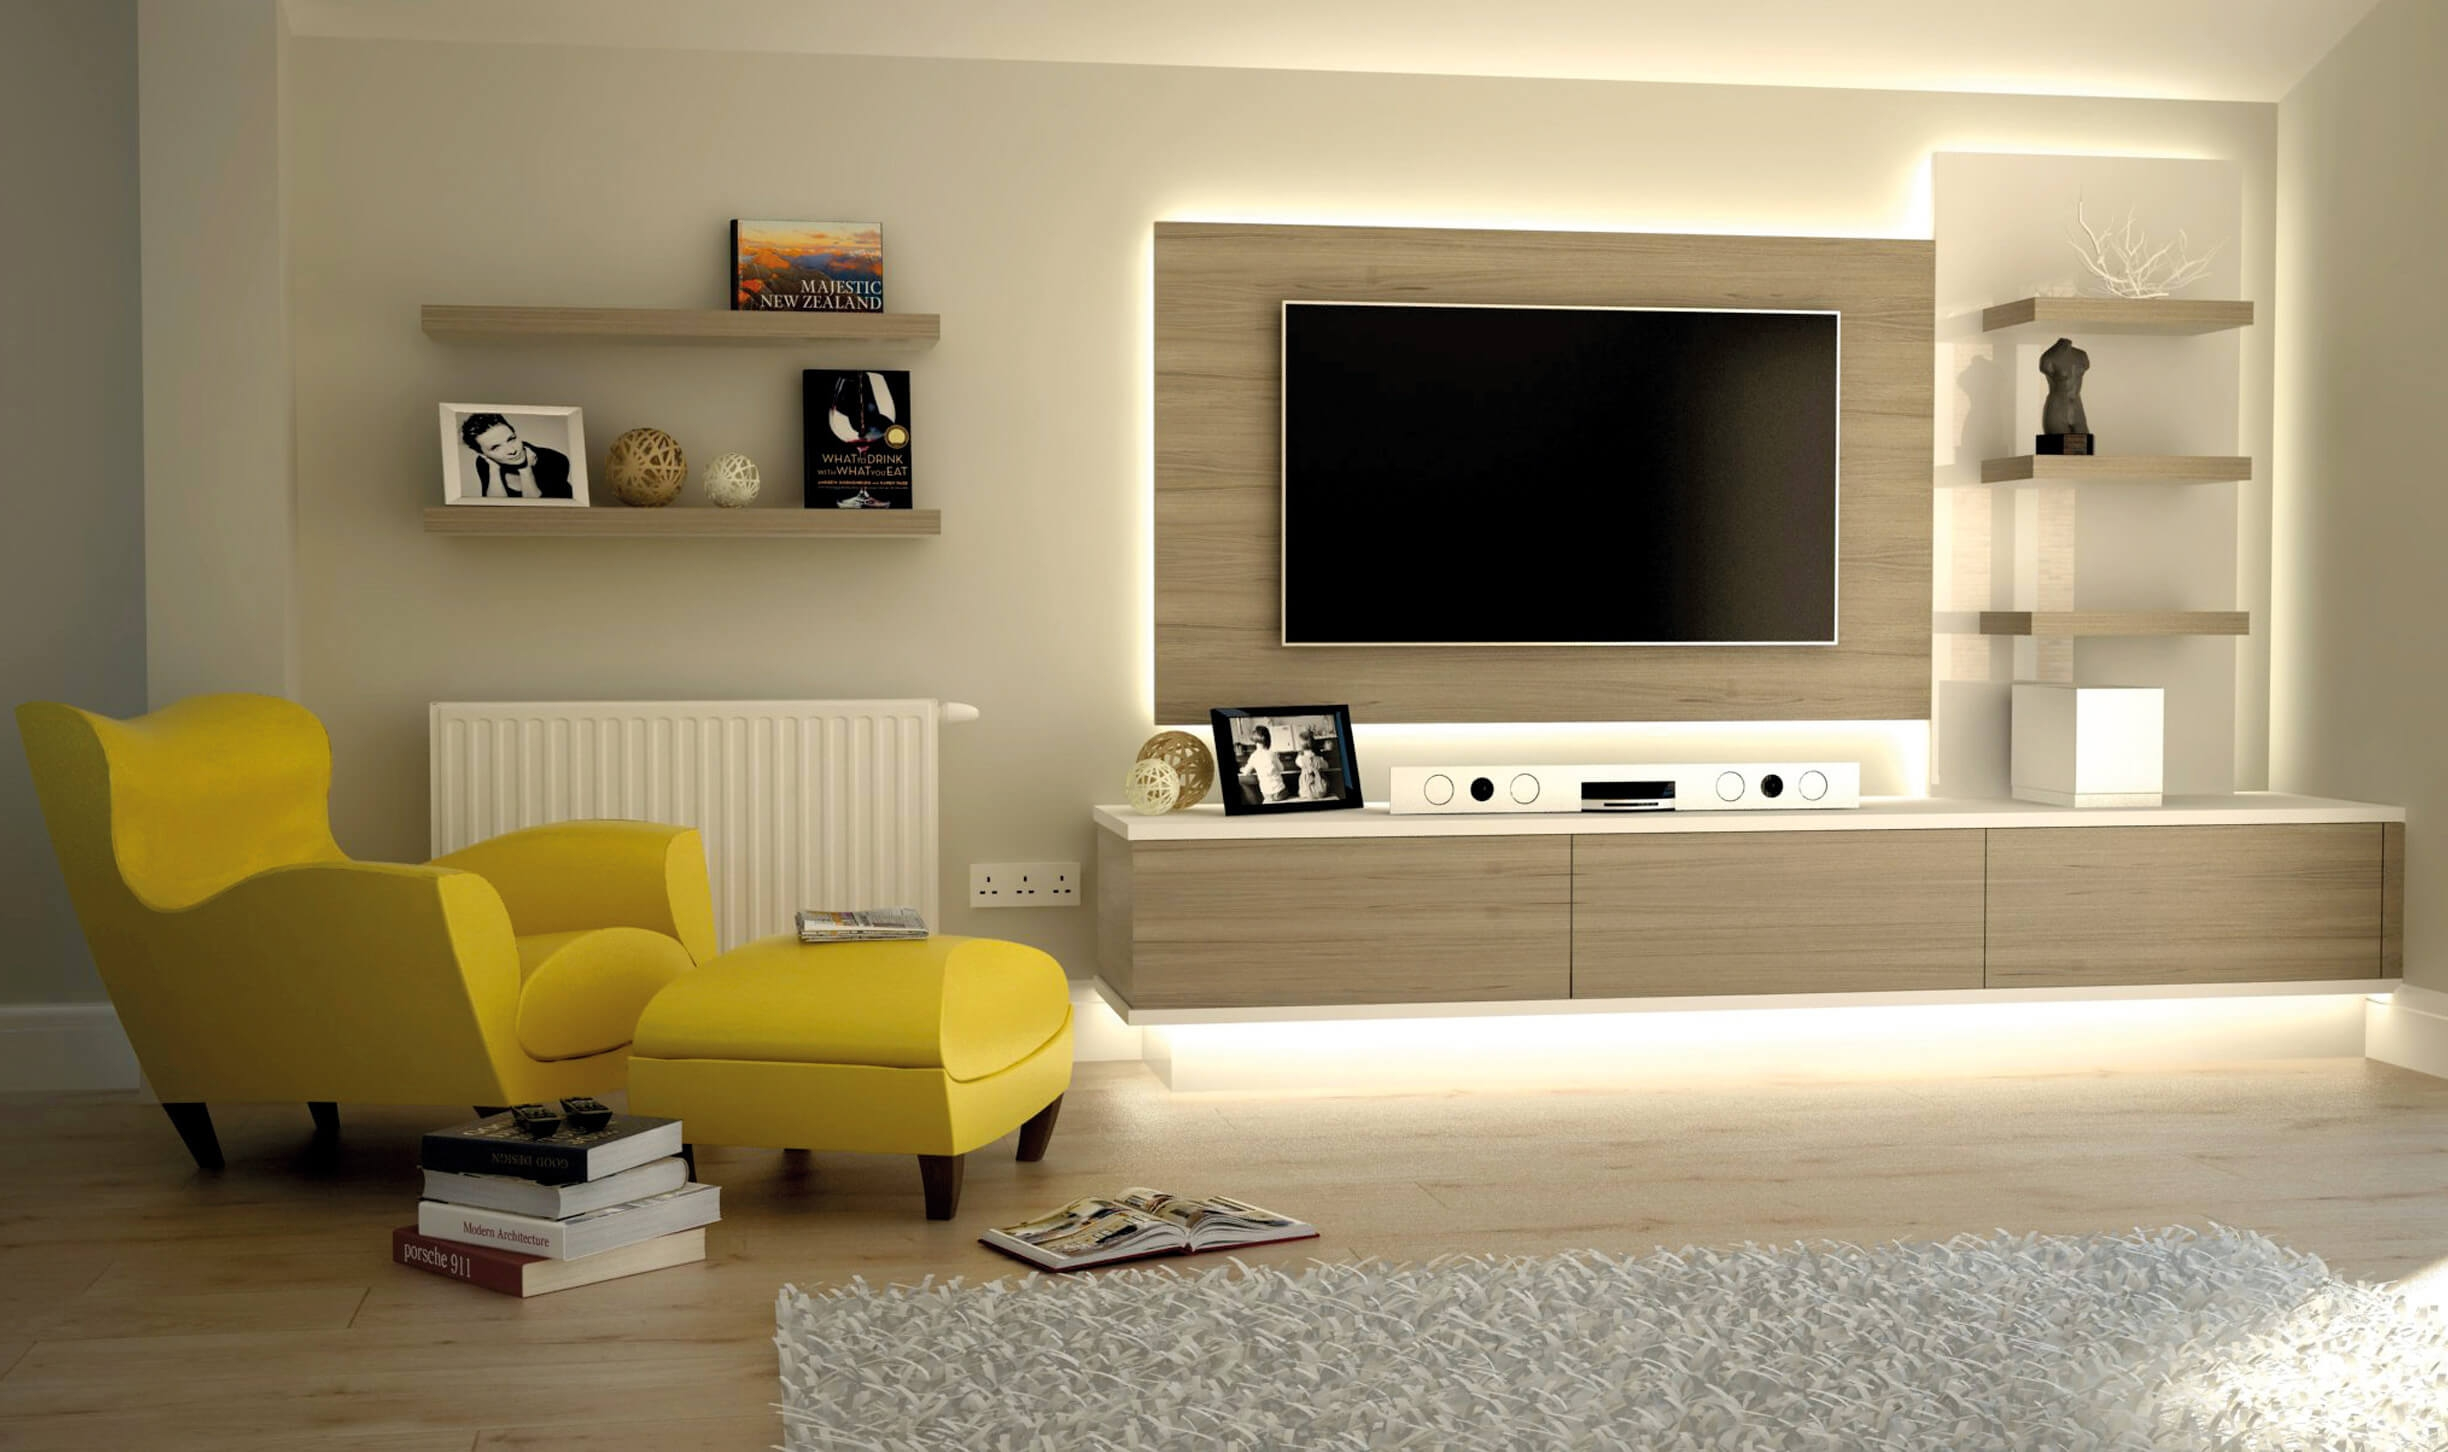 Bespoke Tv Cabinets Bookcases And Storage Units For Over 50 For Bespoke Tv Cabinet (Image 2 of 15)